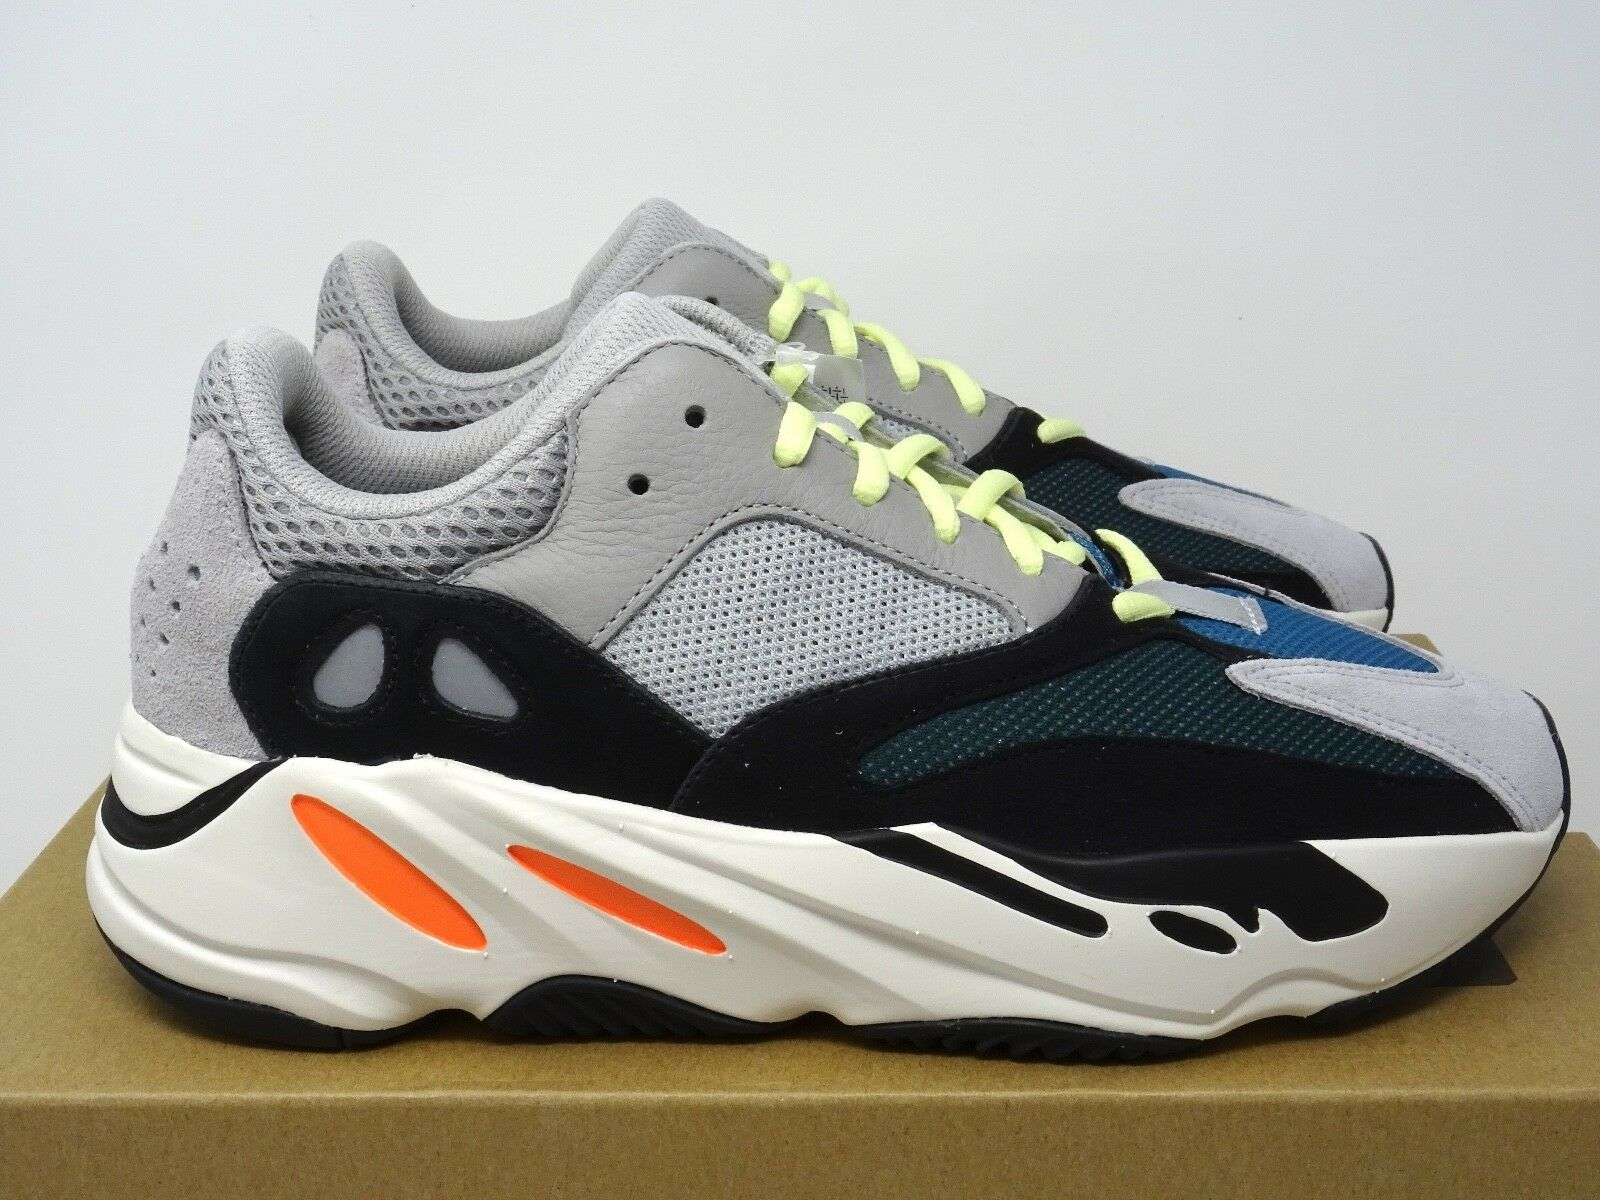 Adidas Yeezy Boost 700 Wave Runner OG Solid Grey orange US